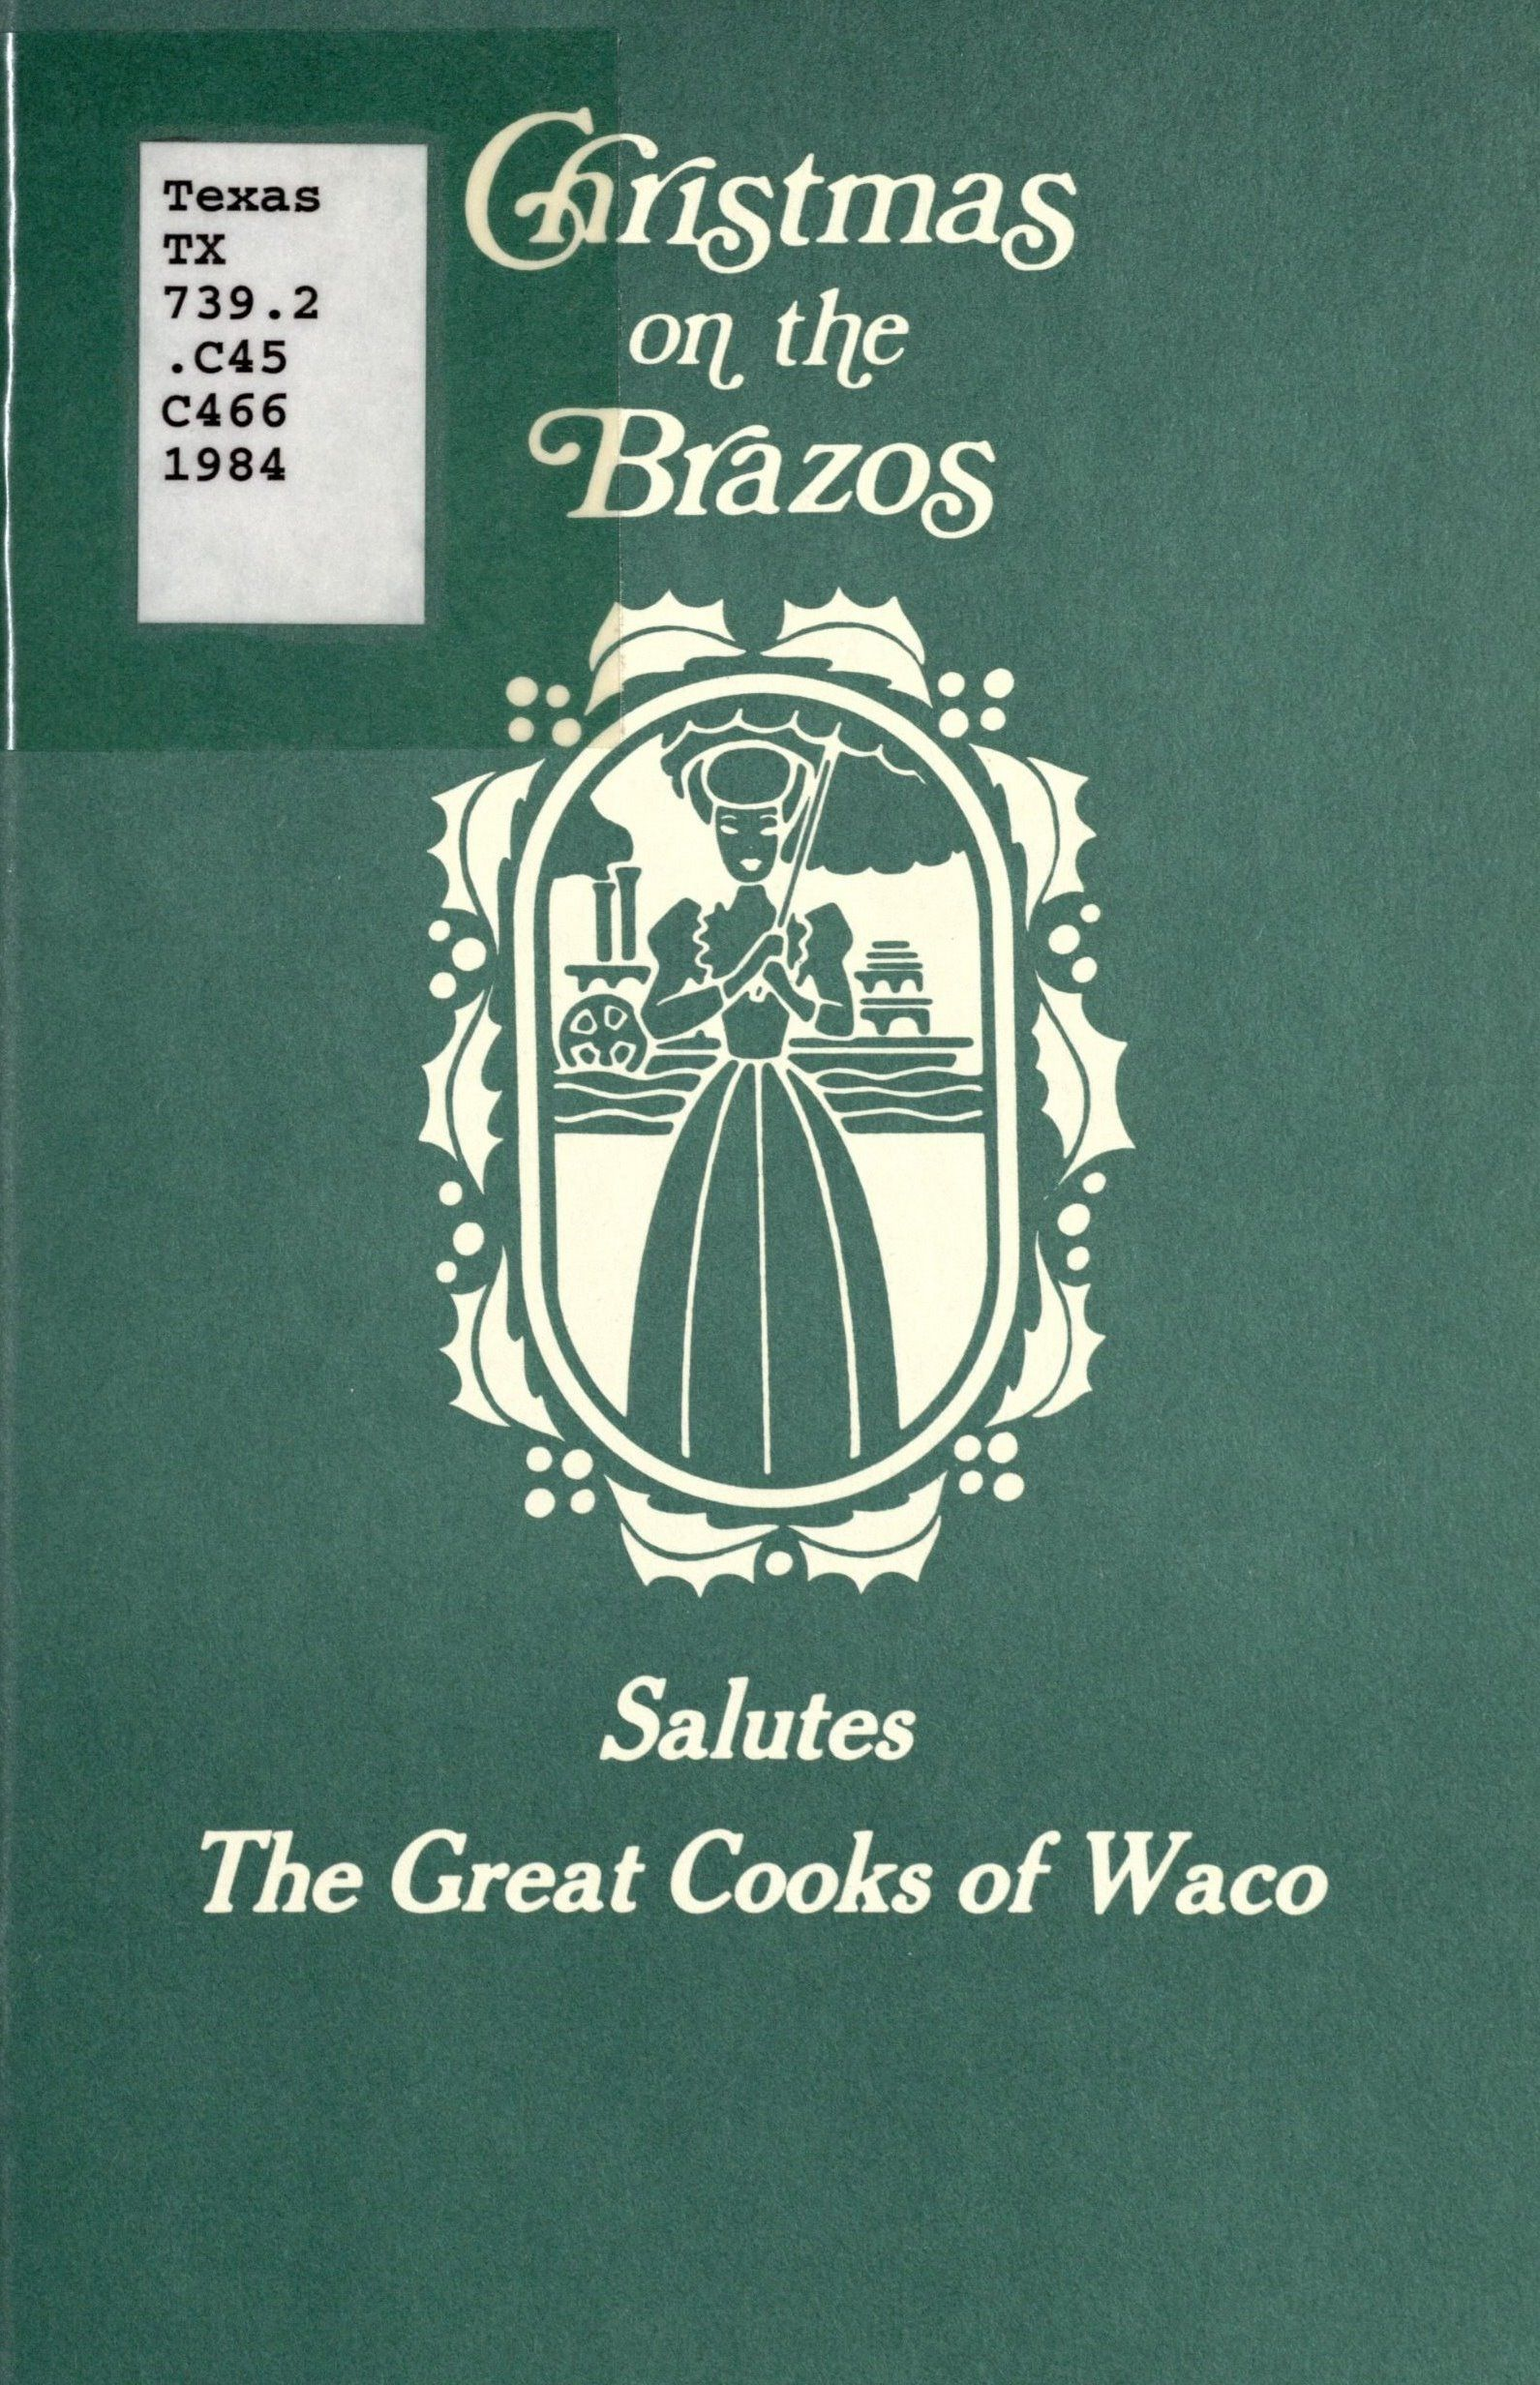 Campbell, Reba, ed. Christmas on the Brazos Salutes the Great Cooks of Waco. [Waco, Texas: Central Texas Printing, Inc., 1984.] Print.